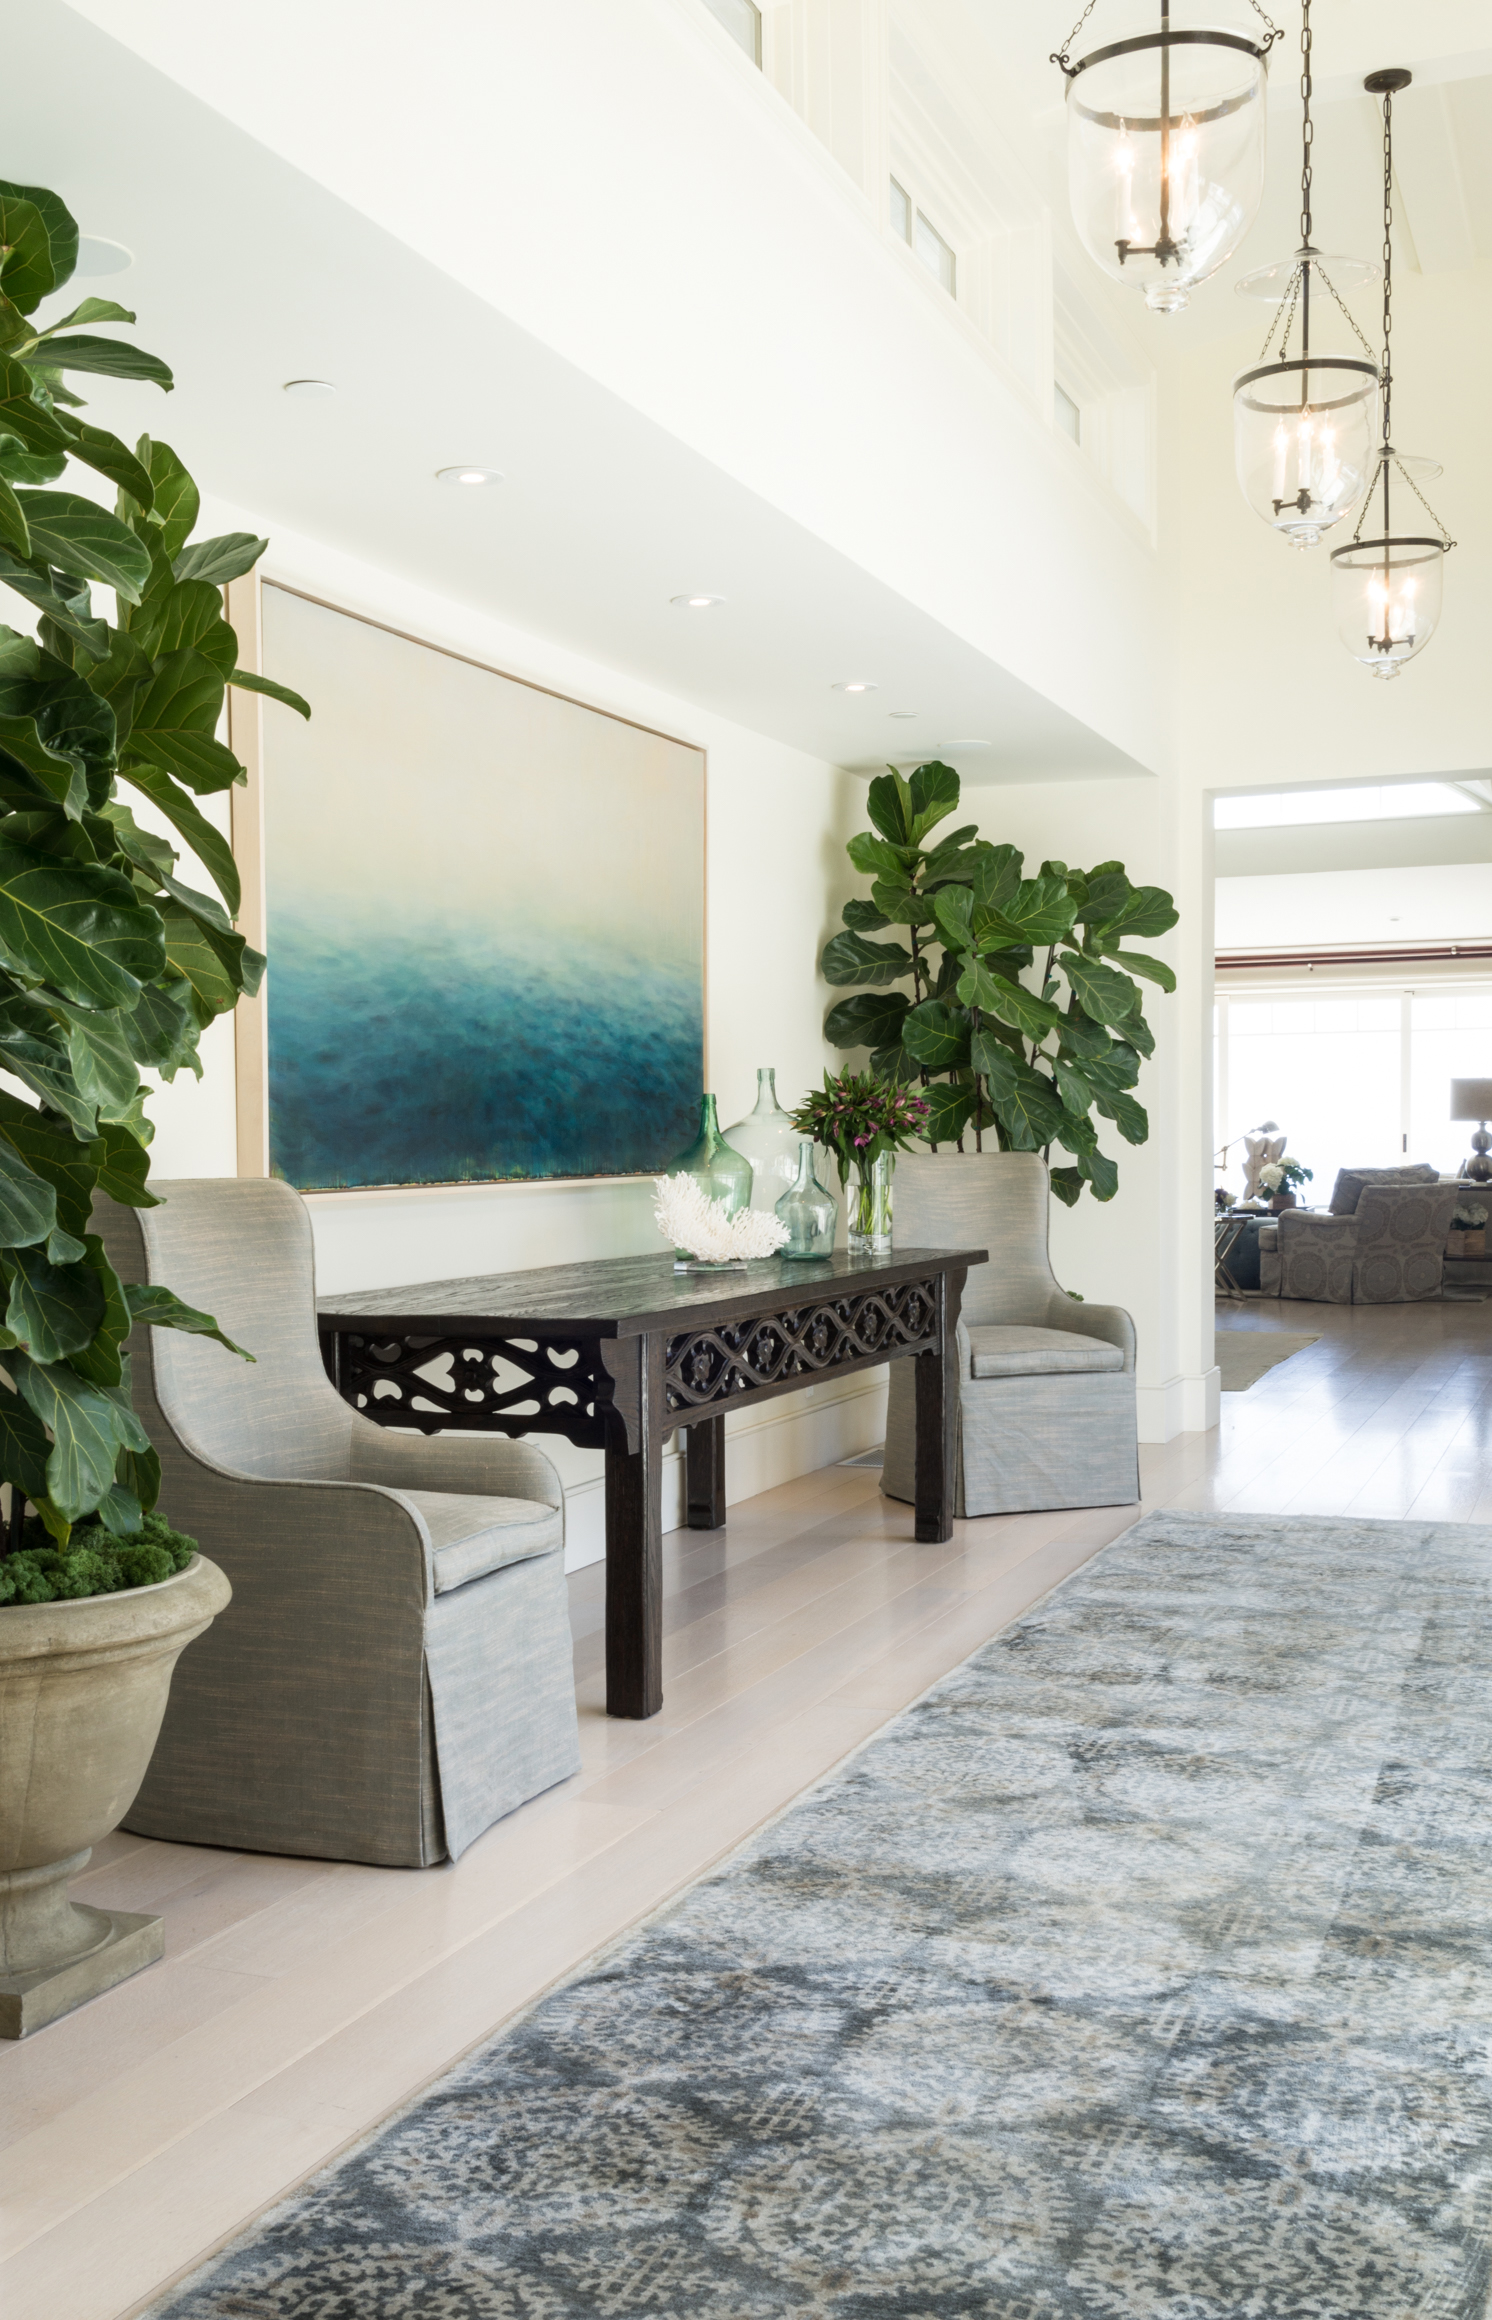 Our design firm, located in the heart of beautiful Laguna Beach, specializes in high-end residential interior design. - From quick fixes to uplift and update a room, to historical remodels, we work with each client individually, creating homes that are layered with unique pieces and custom furniture to incorporate elegance, ease & comfort for each client.